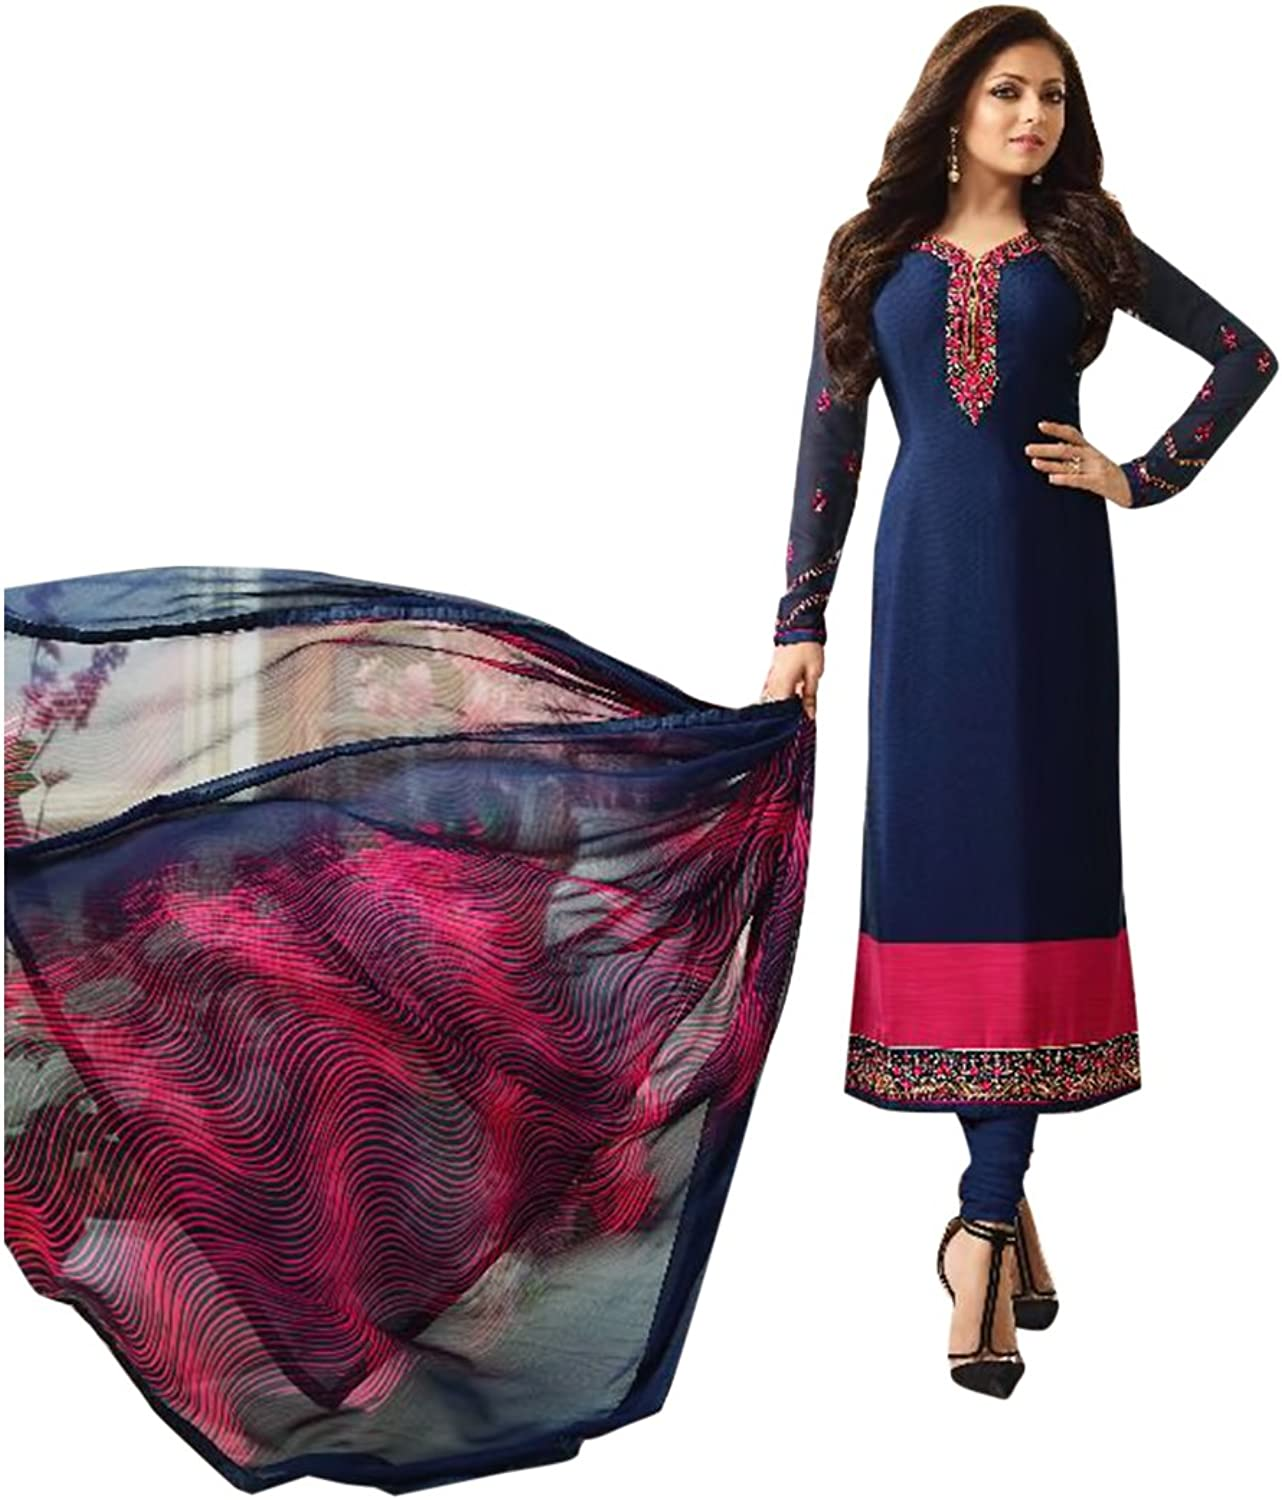 BOLLYWOOD DESIGNER NEW LAUNCH LONG SALWAR KAMEEZ GOWN LONG HEAVY WEDDING CEREMONY PARTY WEAR BY ETHNIC EMPORIUM